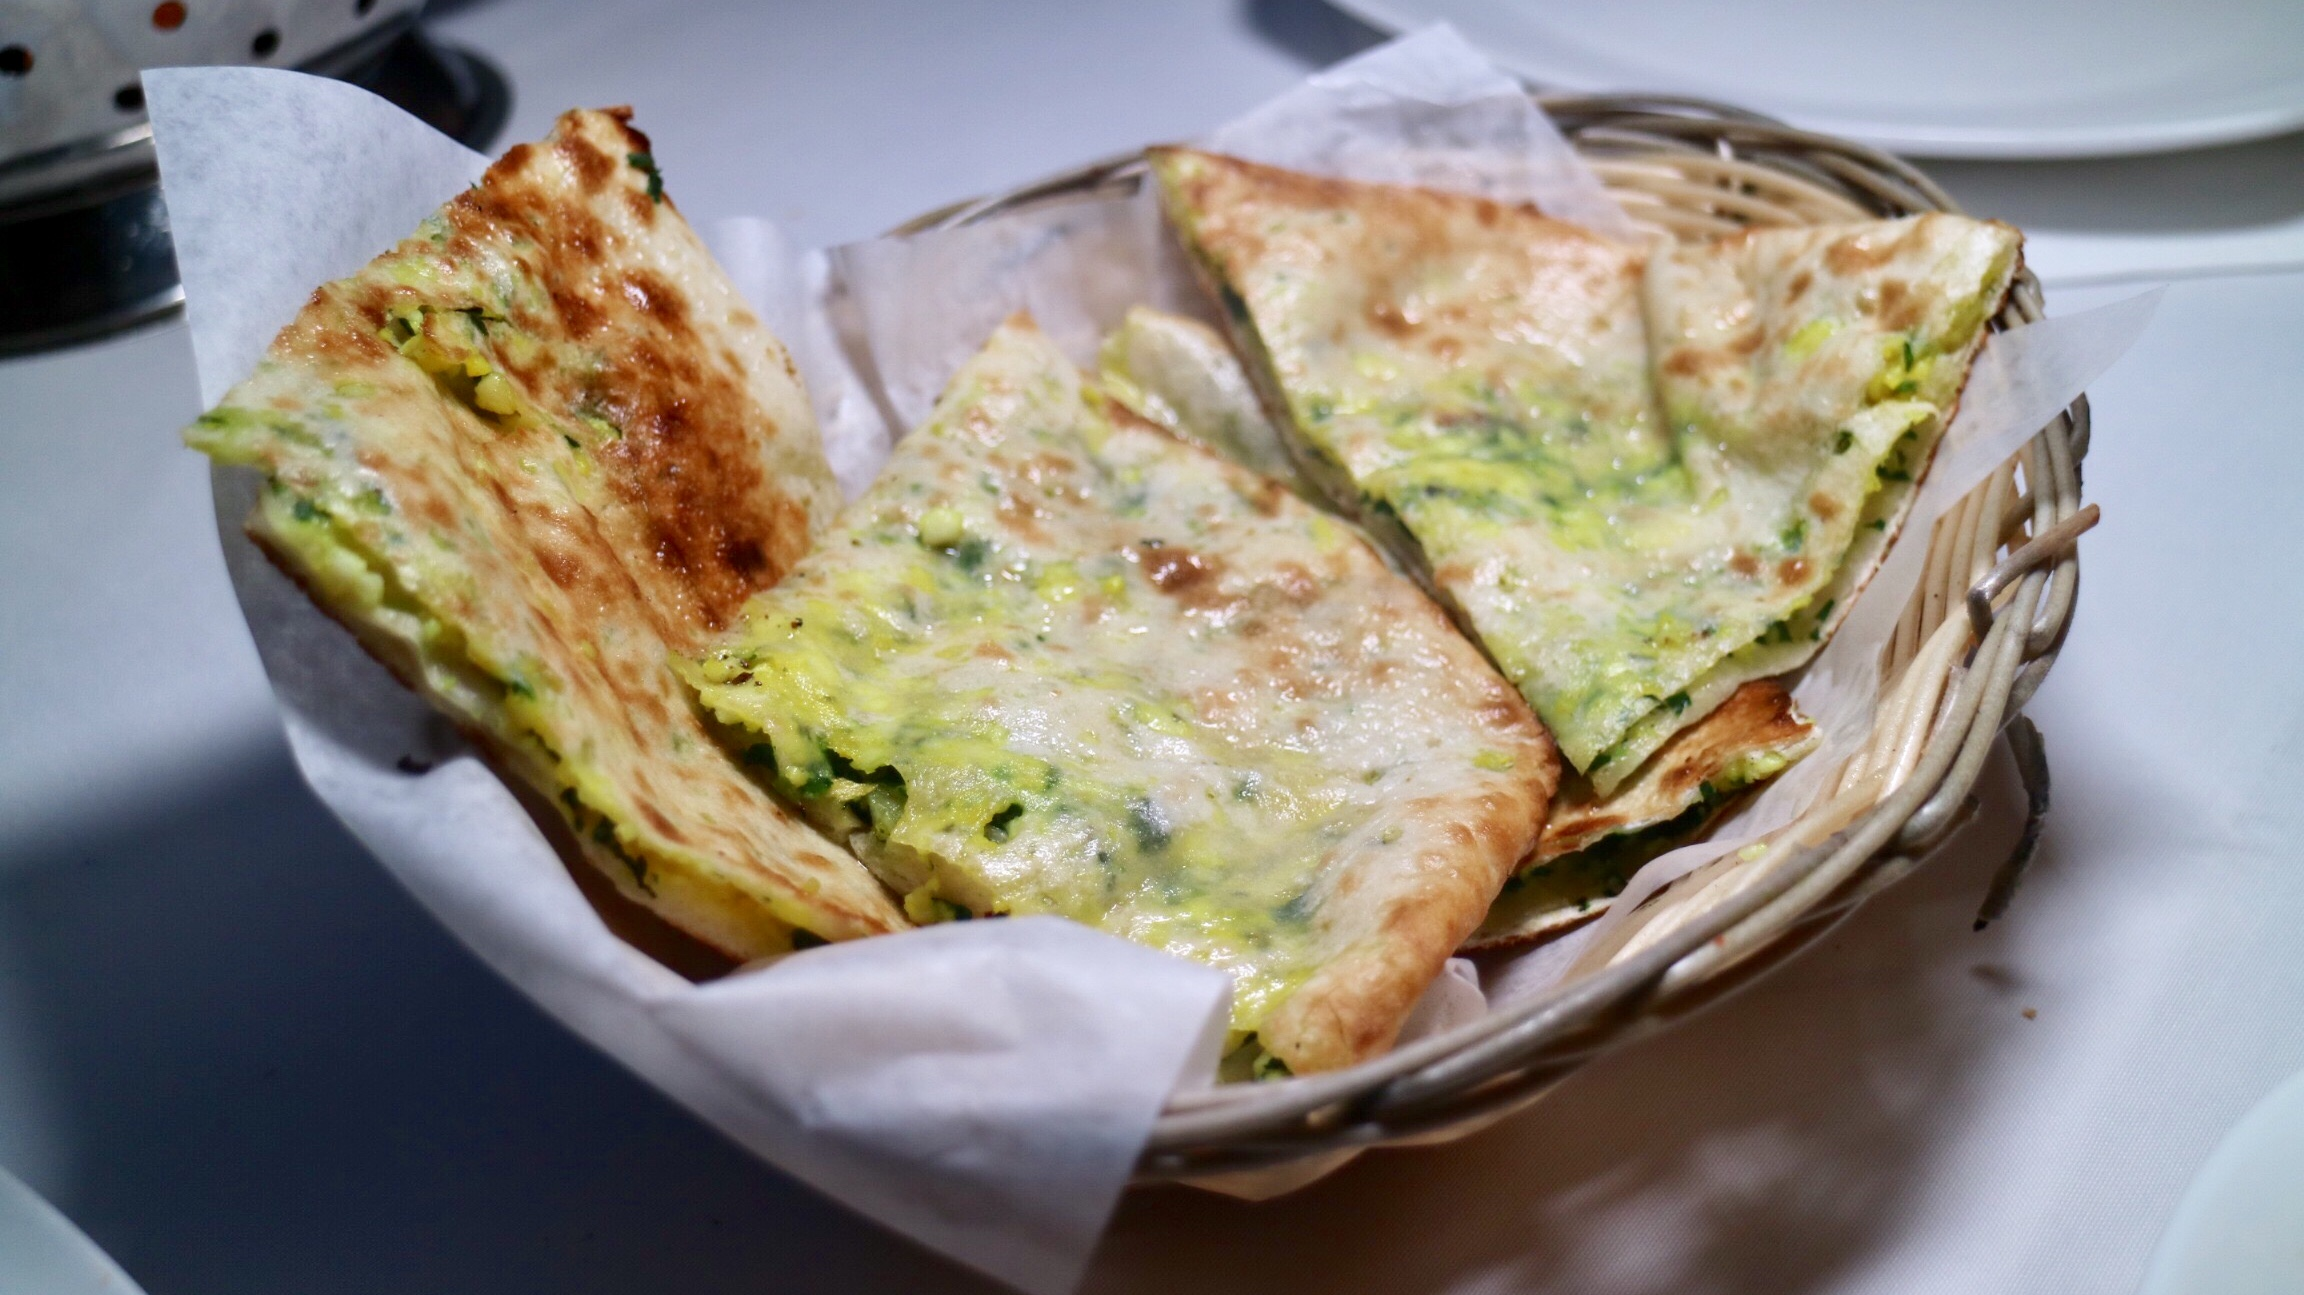 Spinach & Cheese Naan